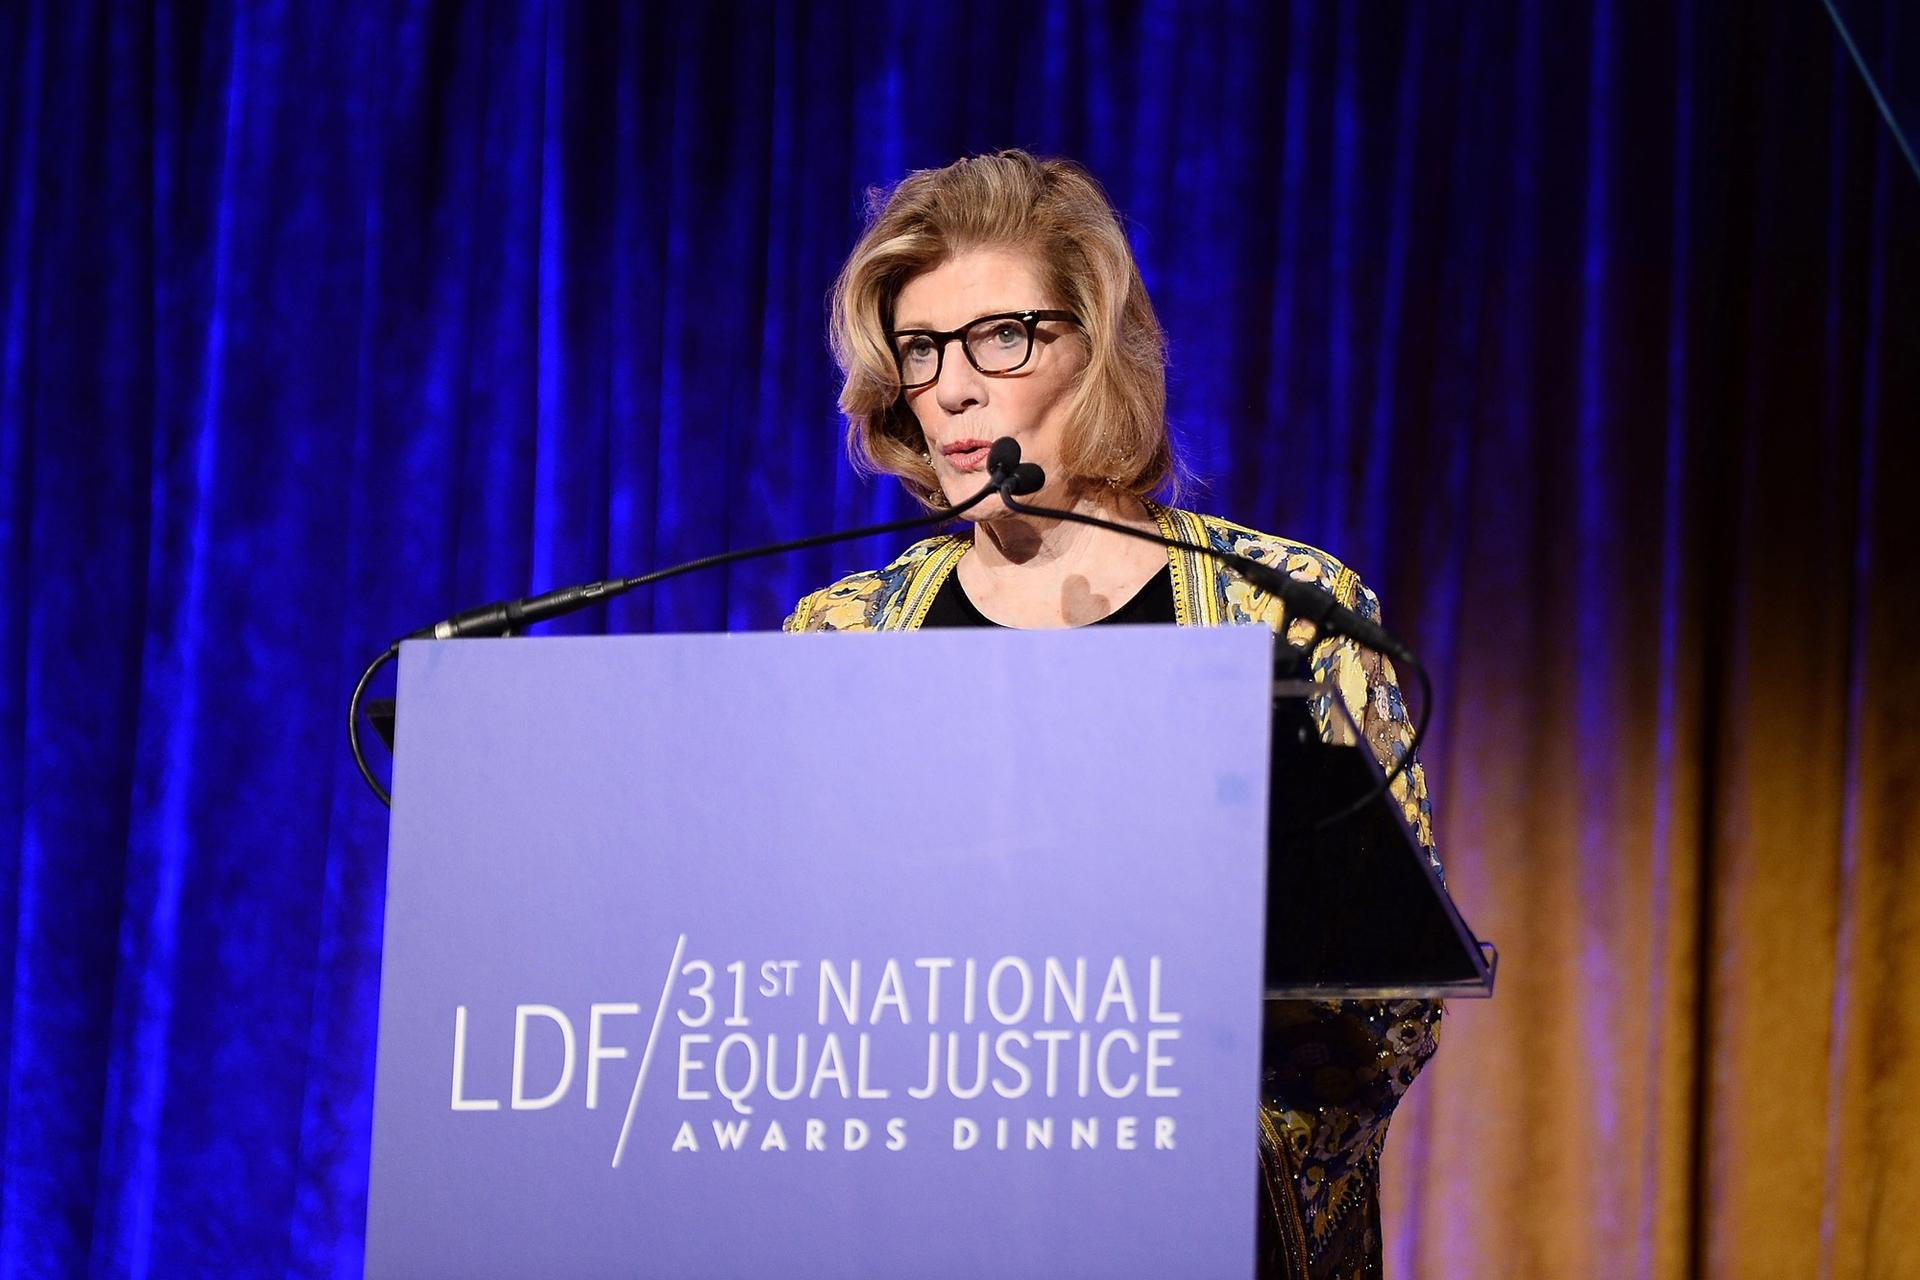 Agnes Gund speaking at the NAACP Legal Defense and Educational Fund's National Equal Justice Awards Dinner in November 2017 Photo: Dave Kotinsky/Getty Images for NAACP Legal Defense and Educational Fund, Inc